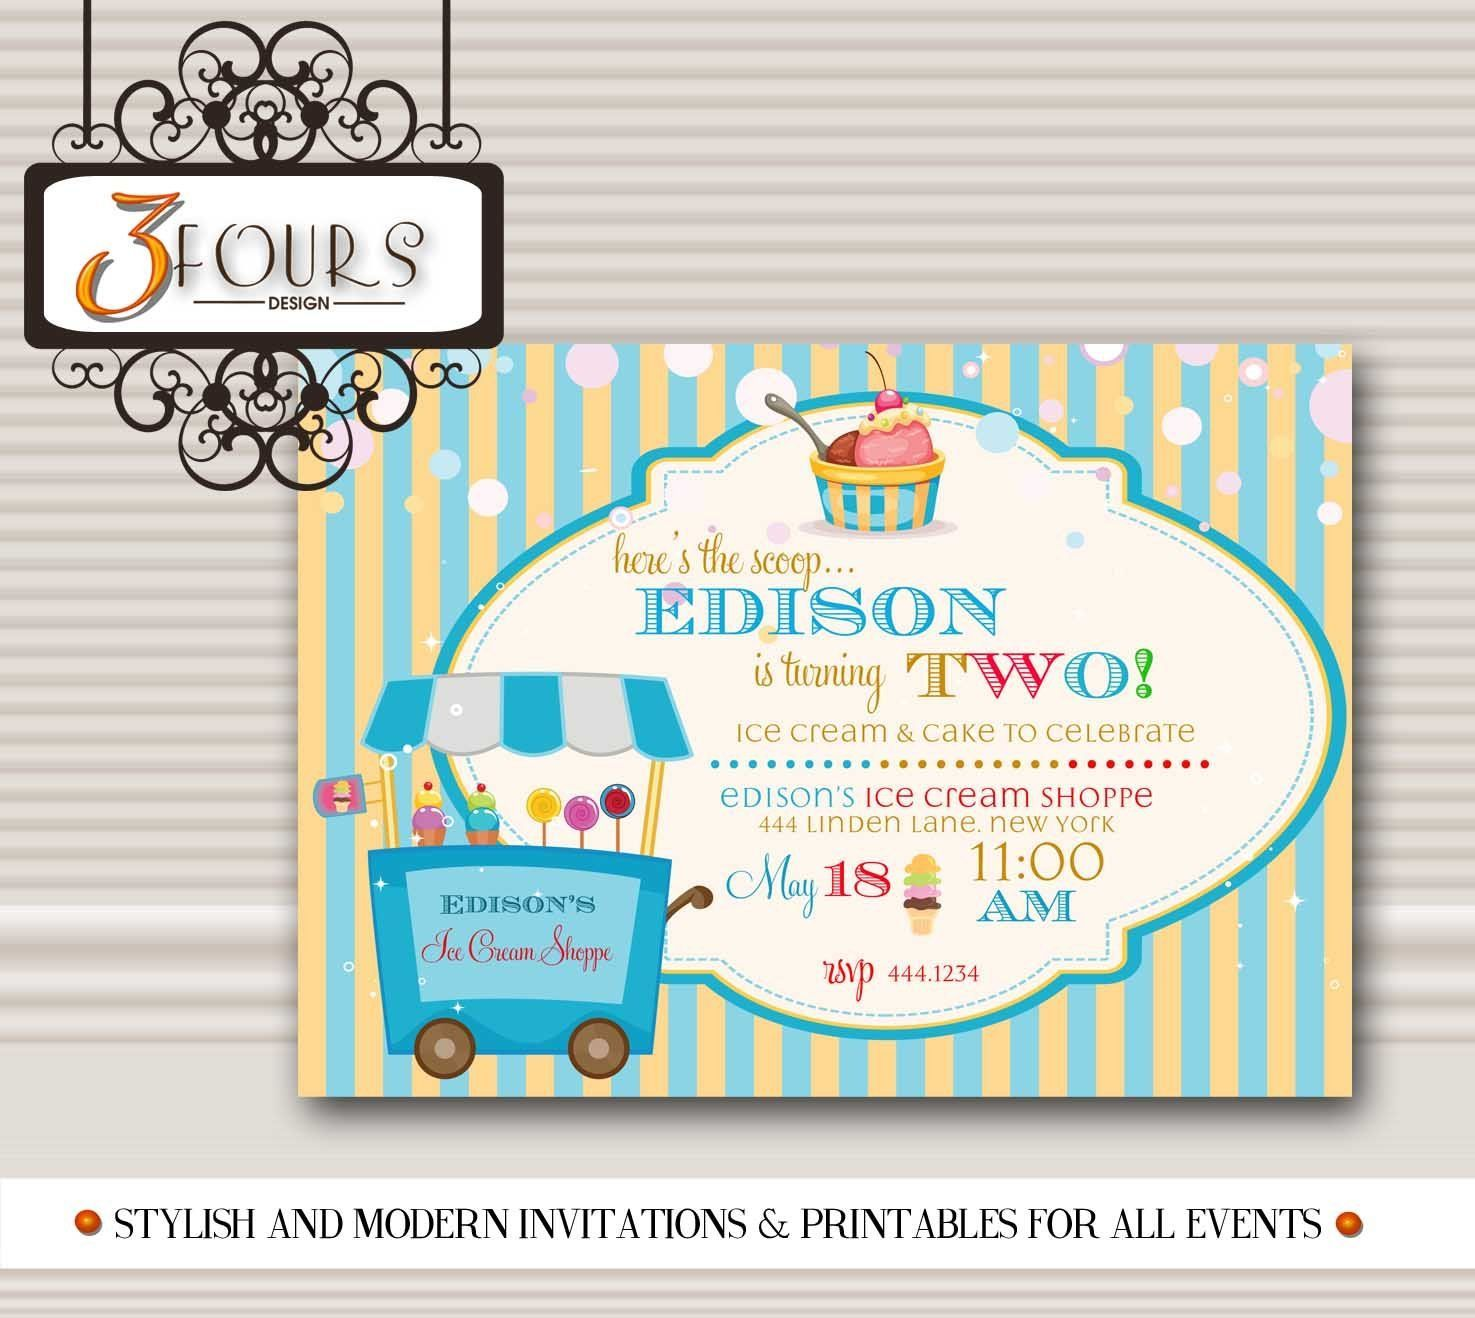 Ice Cream Social Boy Birthday Party Invitations #icecreambirthdayparty Ice Cream Social Boy Birthday Party Invitations #icecreambirthdayparty